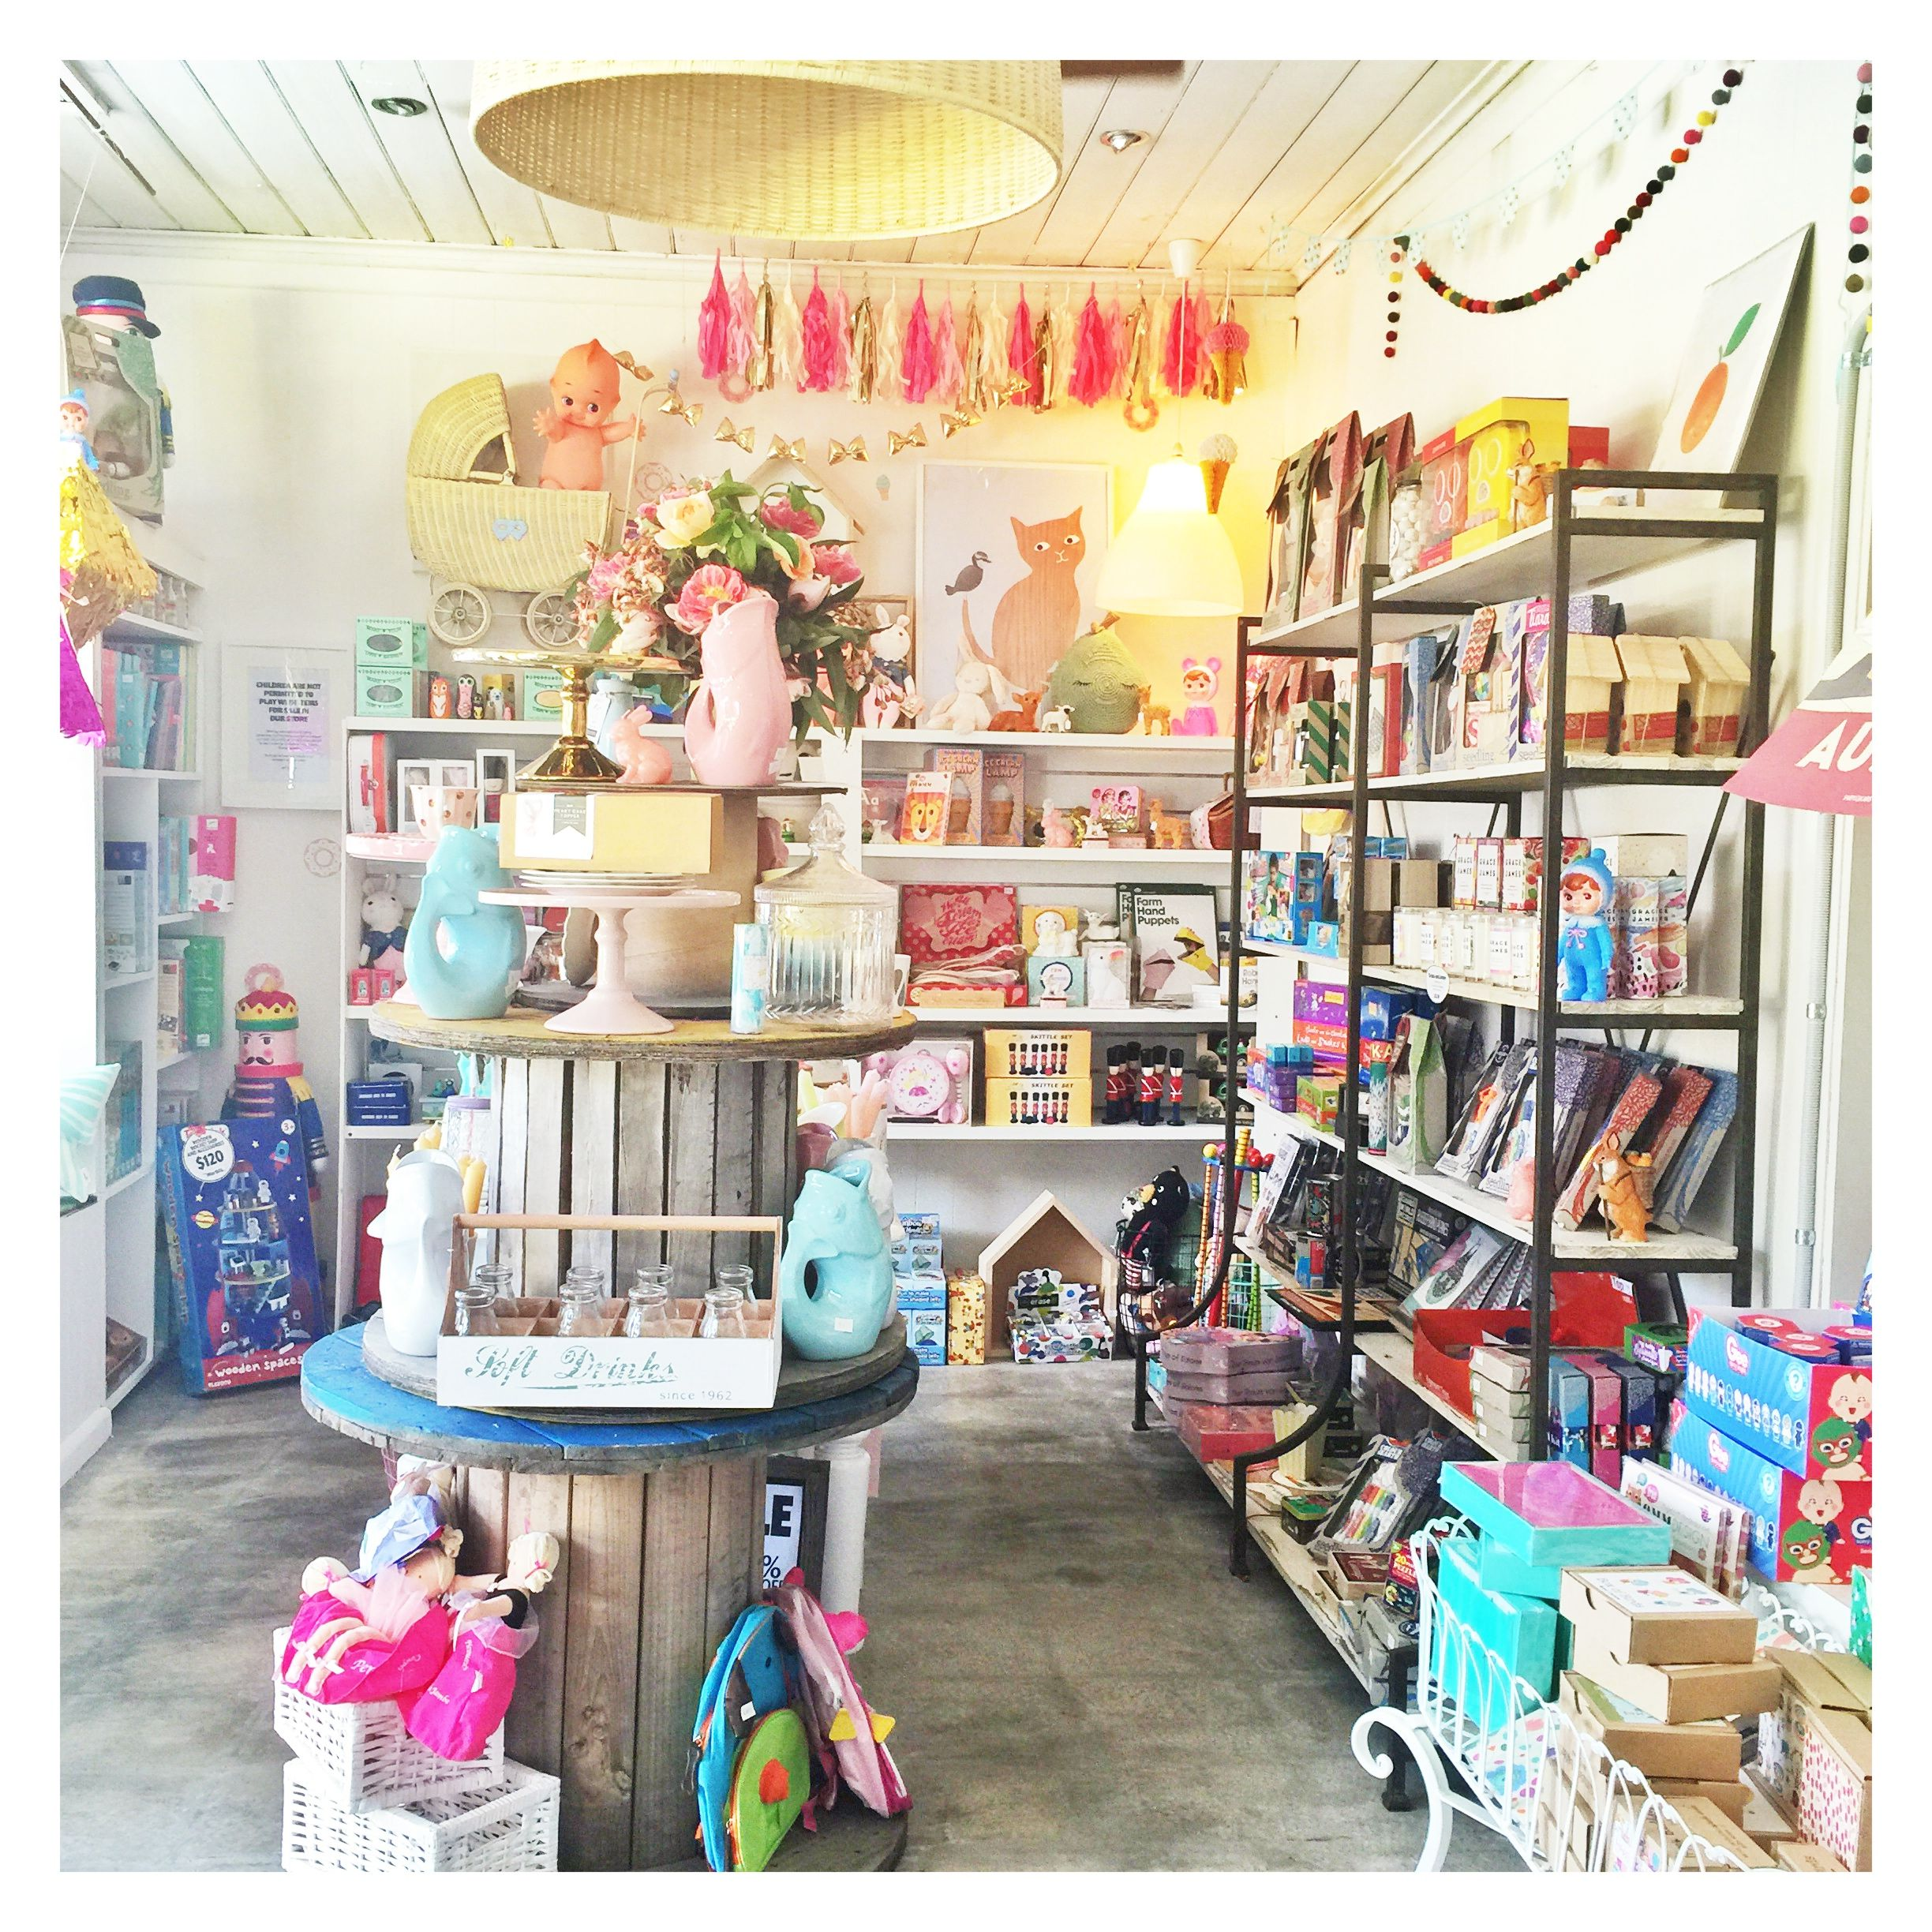 inviteme - 66 Anderson Street, Yarraville. Cute and quirky shop display at  our children's